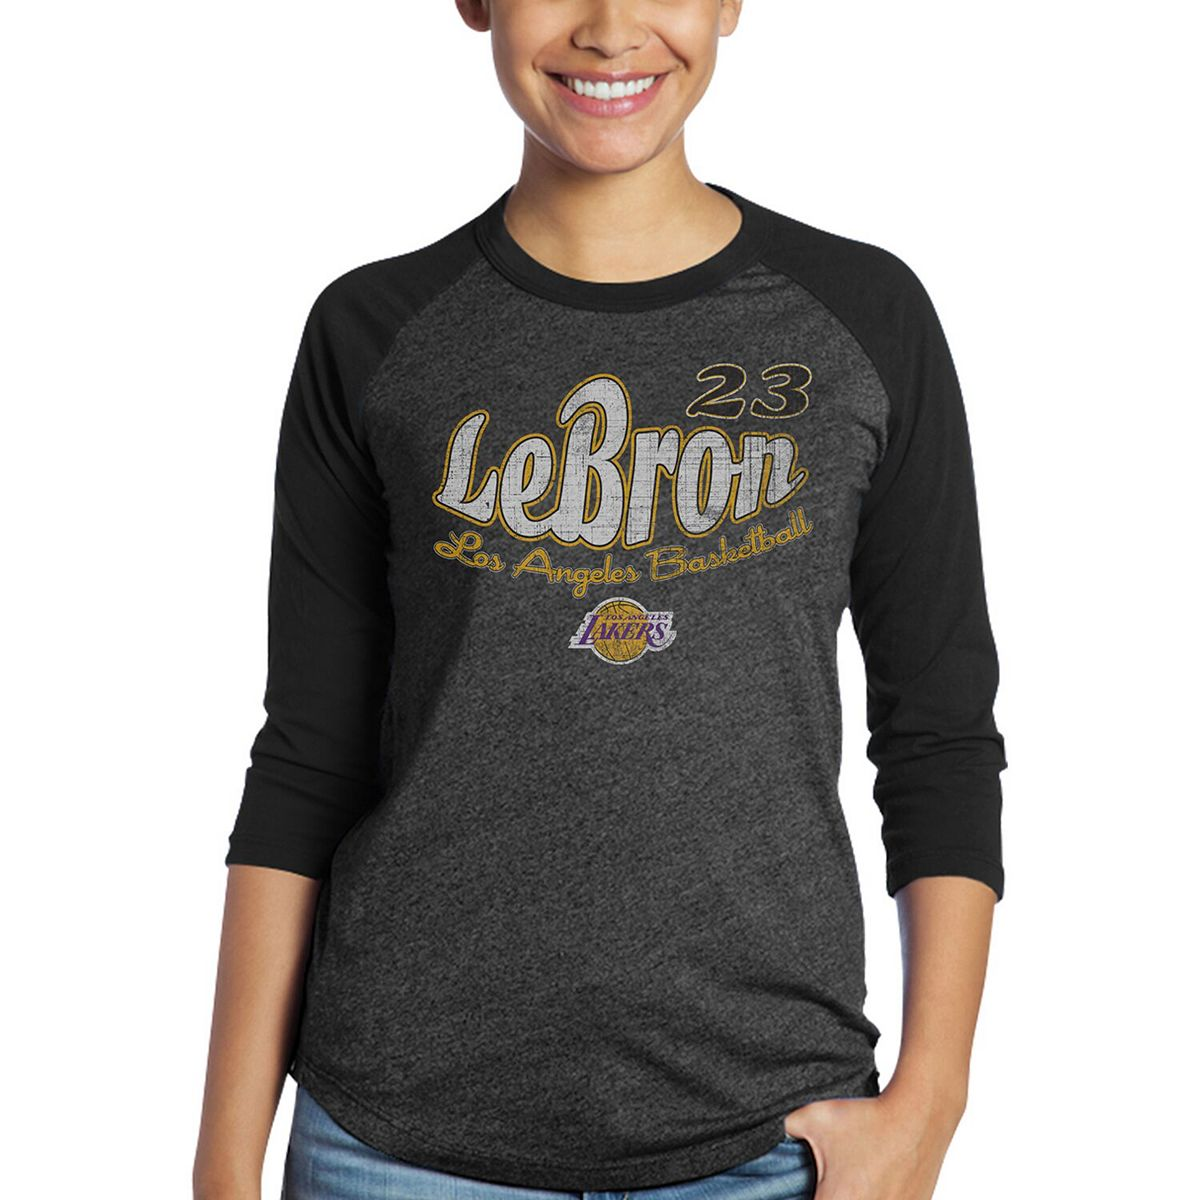 Women's Majestic Threads Black Los Angeles Lakers Lebron Graphic 3/4-Sleeve Tri-Blend Raglan T-Shirt VwYO9